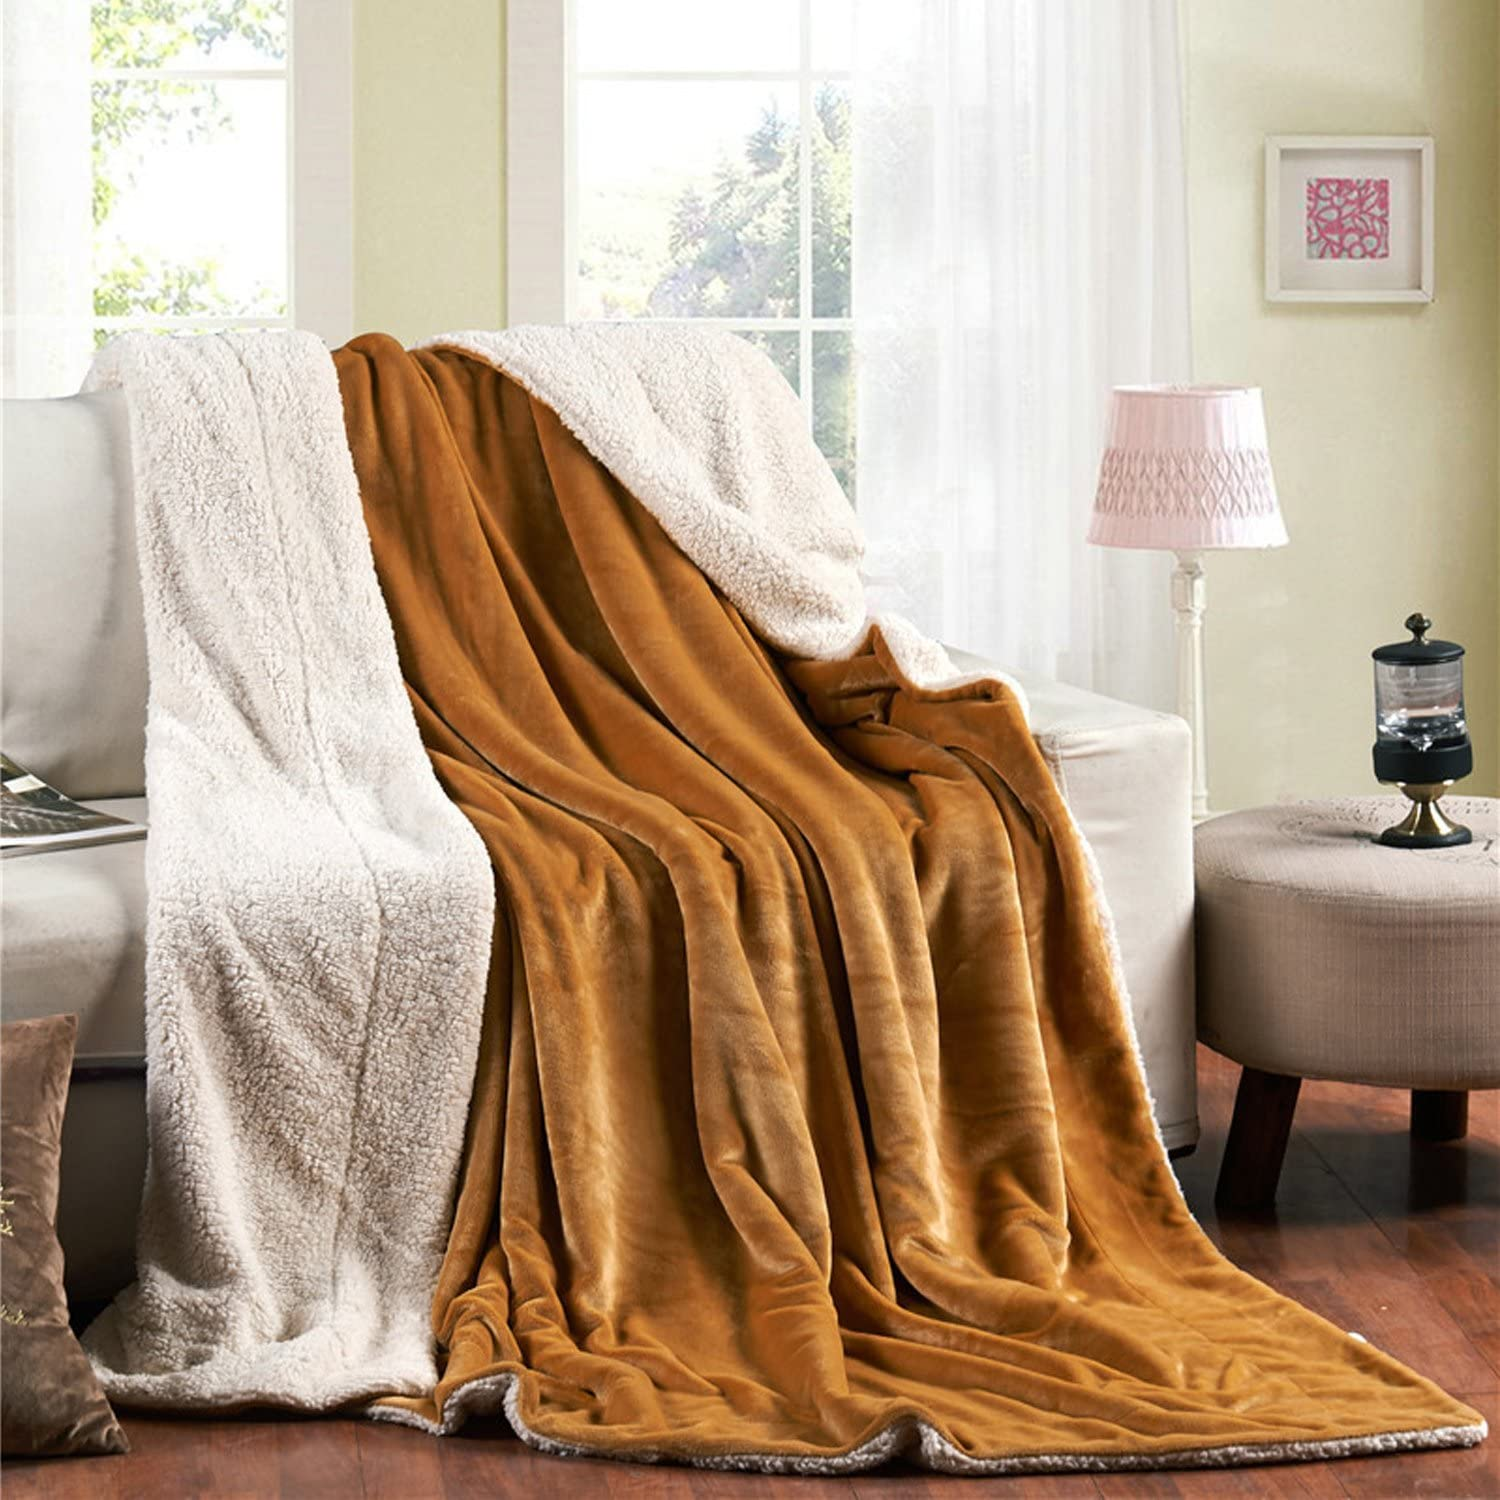 Sherpa Blankets Queen Size Bed Double Fleece Plush Fuzzy Reversible - Gold